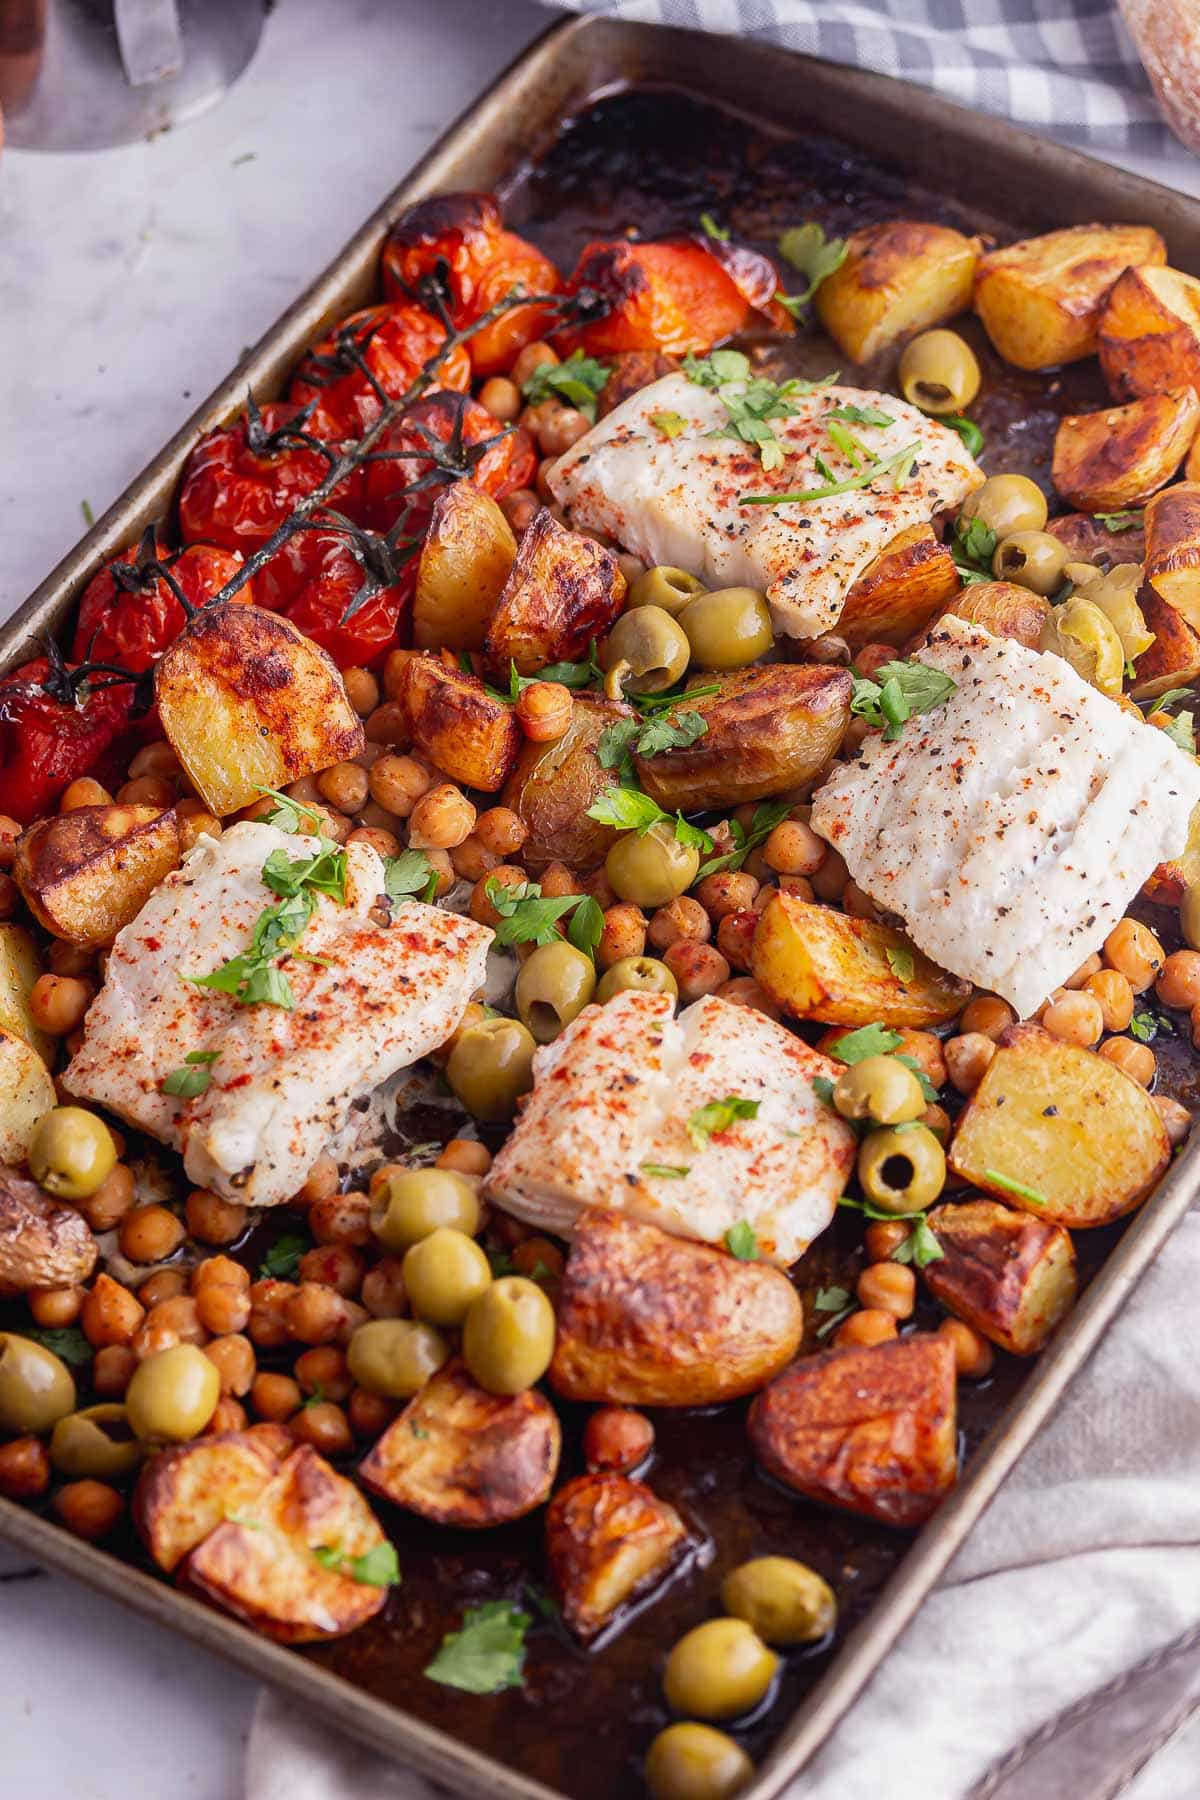 Overhead shot of baked cod and chickpeas on a marble background